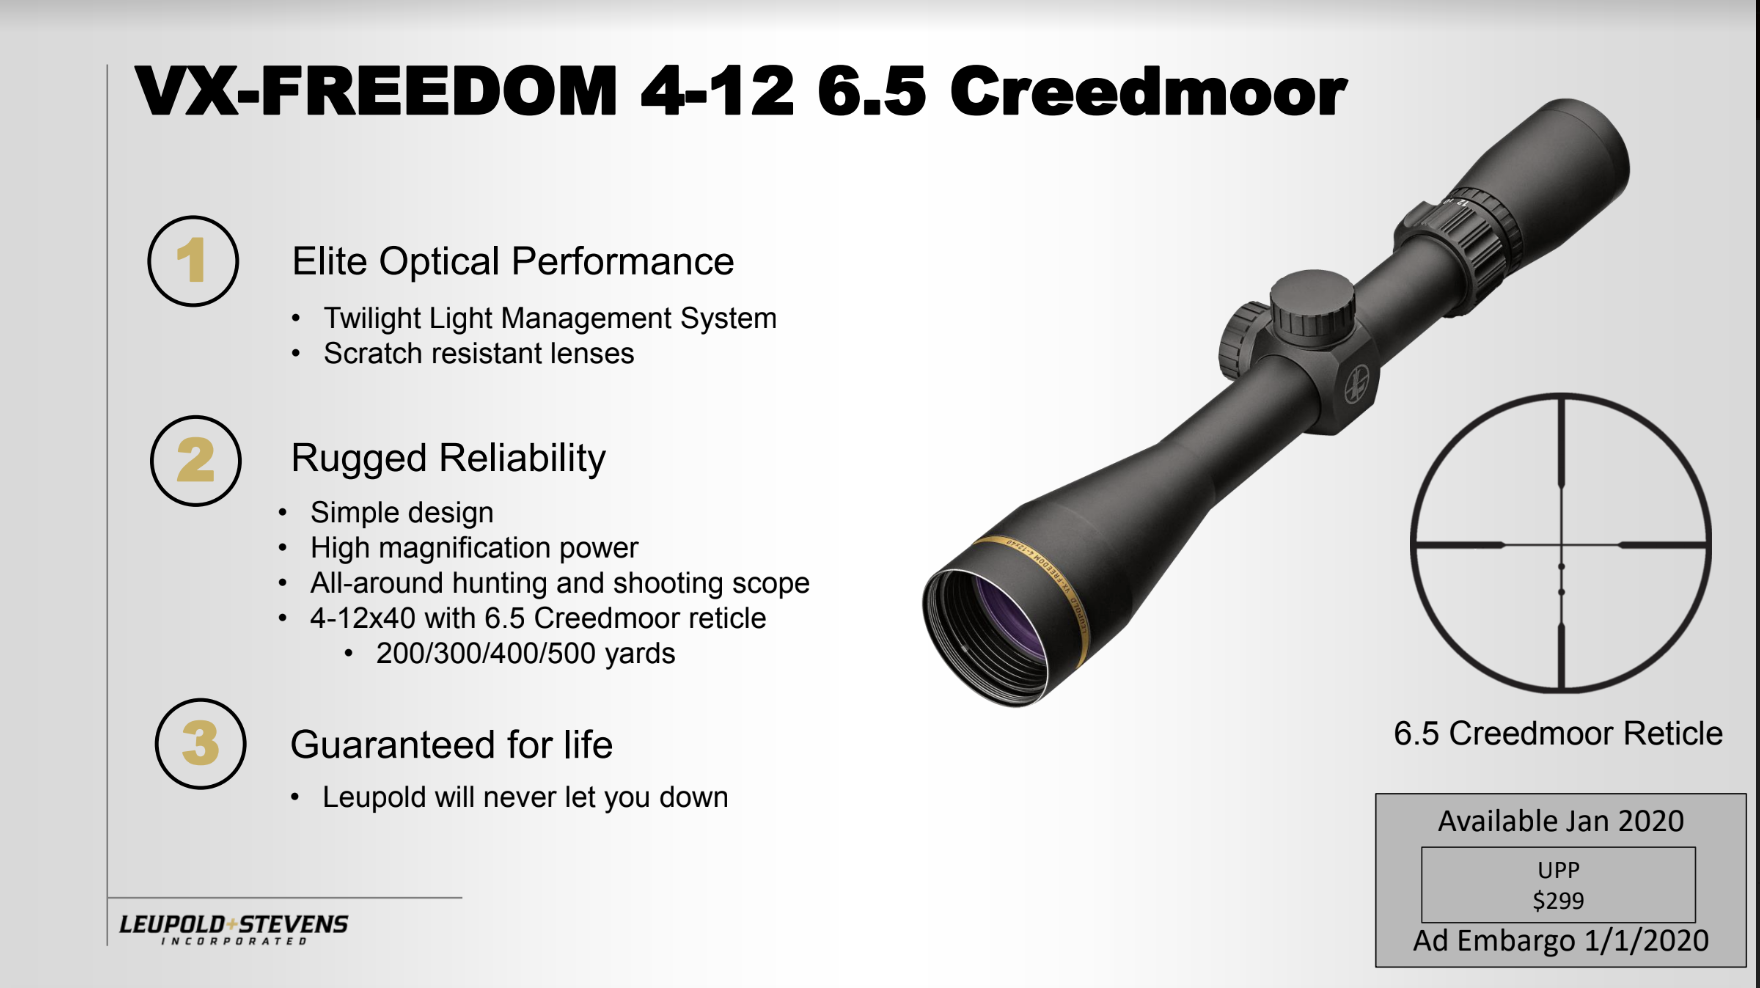 NEW! Leupold VX-Freedom  4-12x40 6.5 Creedmoor Reticle Scope